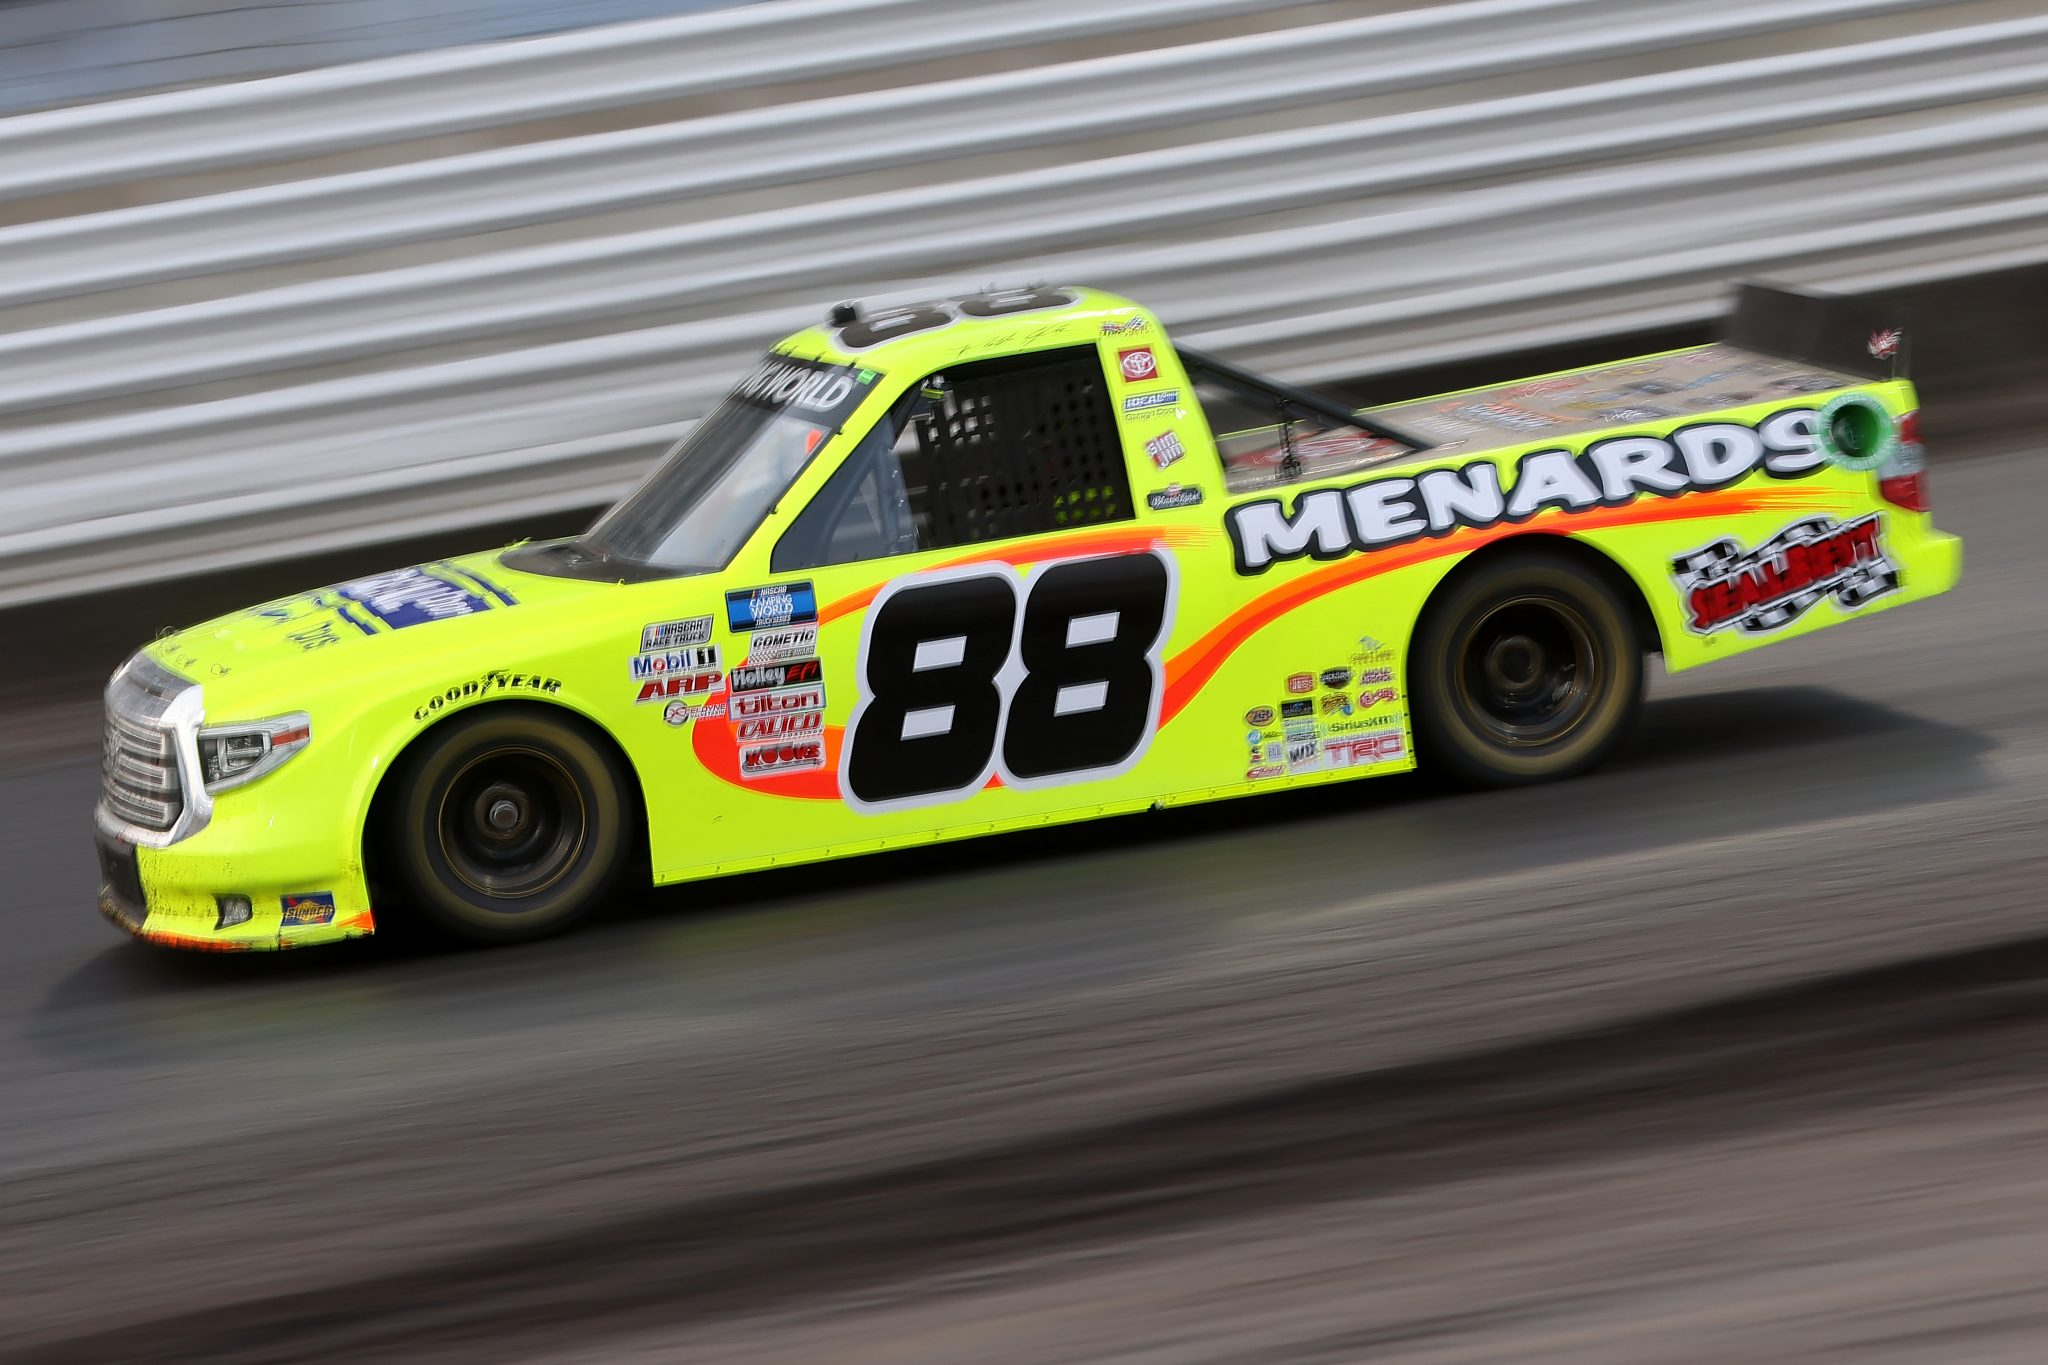 KNOXVILLE, IOWA - JULY 09: Matt Crafton, driver of the #88 Ideal Door/Menards Toyota, drives during the NASCAR Camping World Truck Series Corn Belt 150 presented by Premier Chevy Dealers at Knoxville Raceway on July 09, 2021 in Knoxville, Iowa. (Photo by James Gilbert/Getty Images) | Getty Images